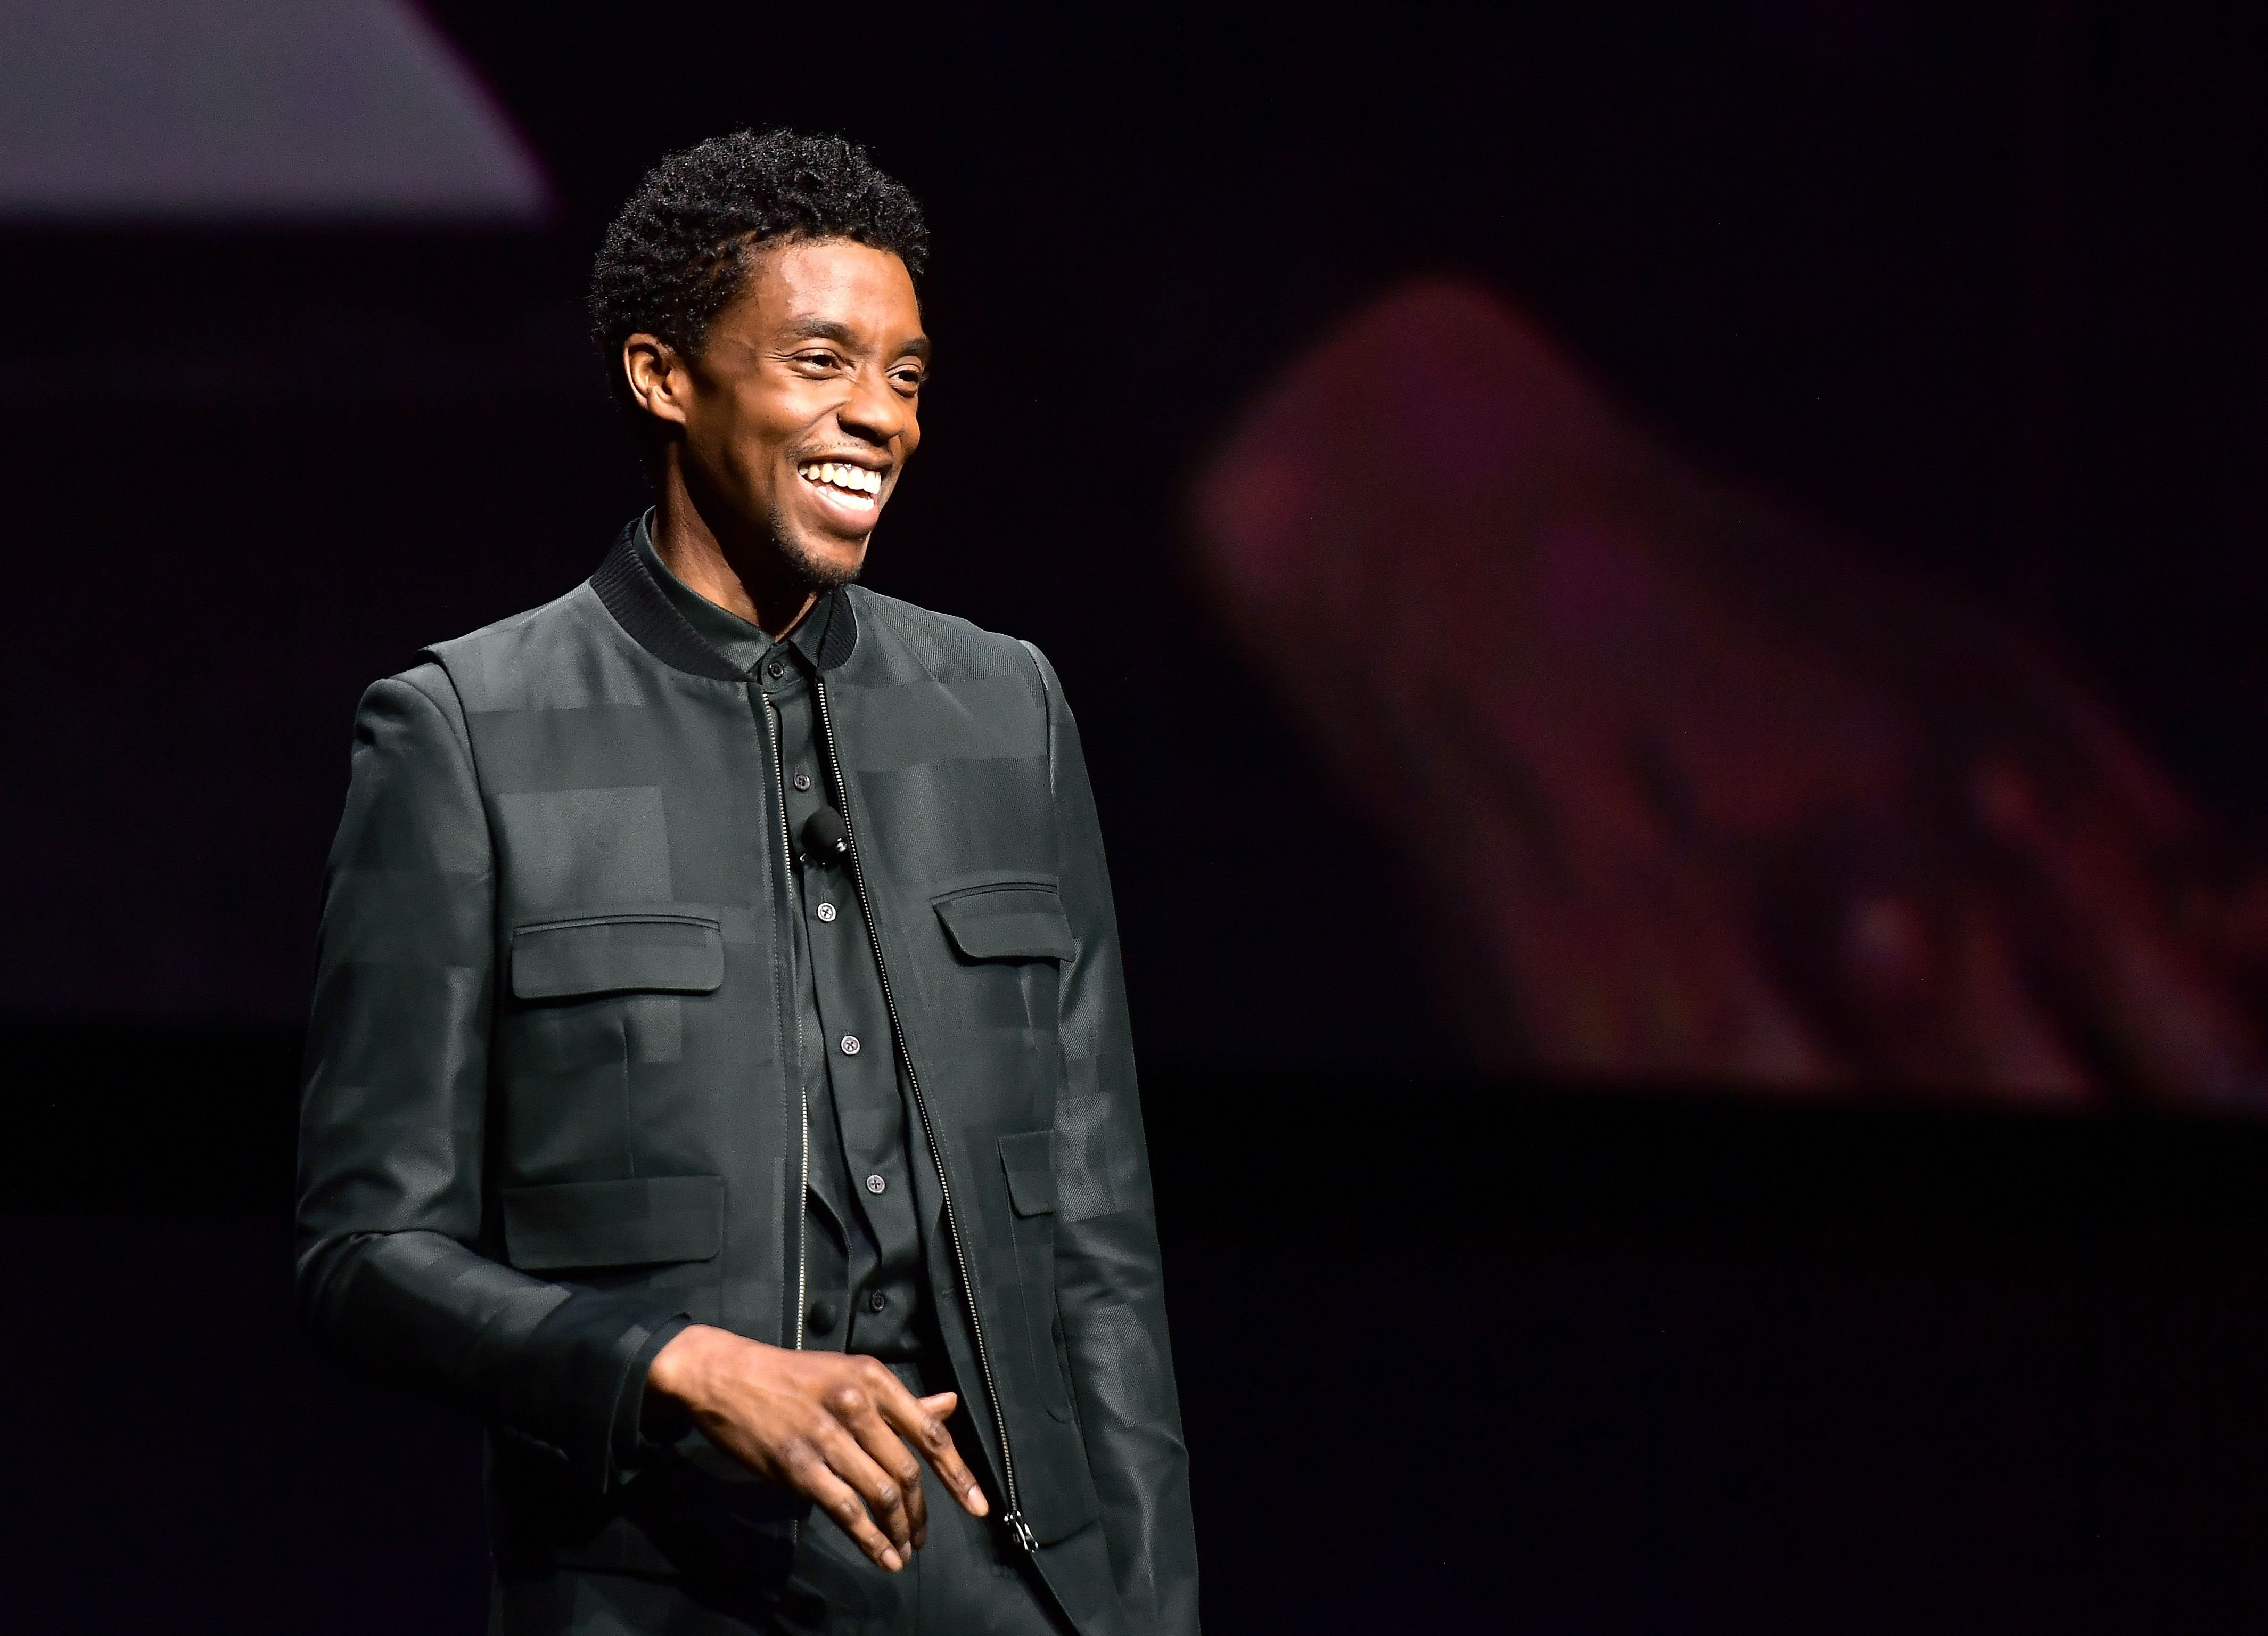 Chadwick Boseman speaks onstage at CinemaCon 2019 at The Colosseum at Caesars Palace on April 2, 2019 | Photo: Getty Images